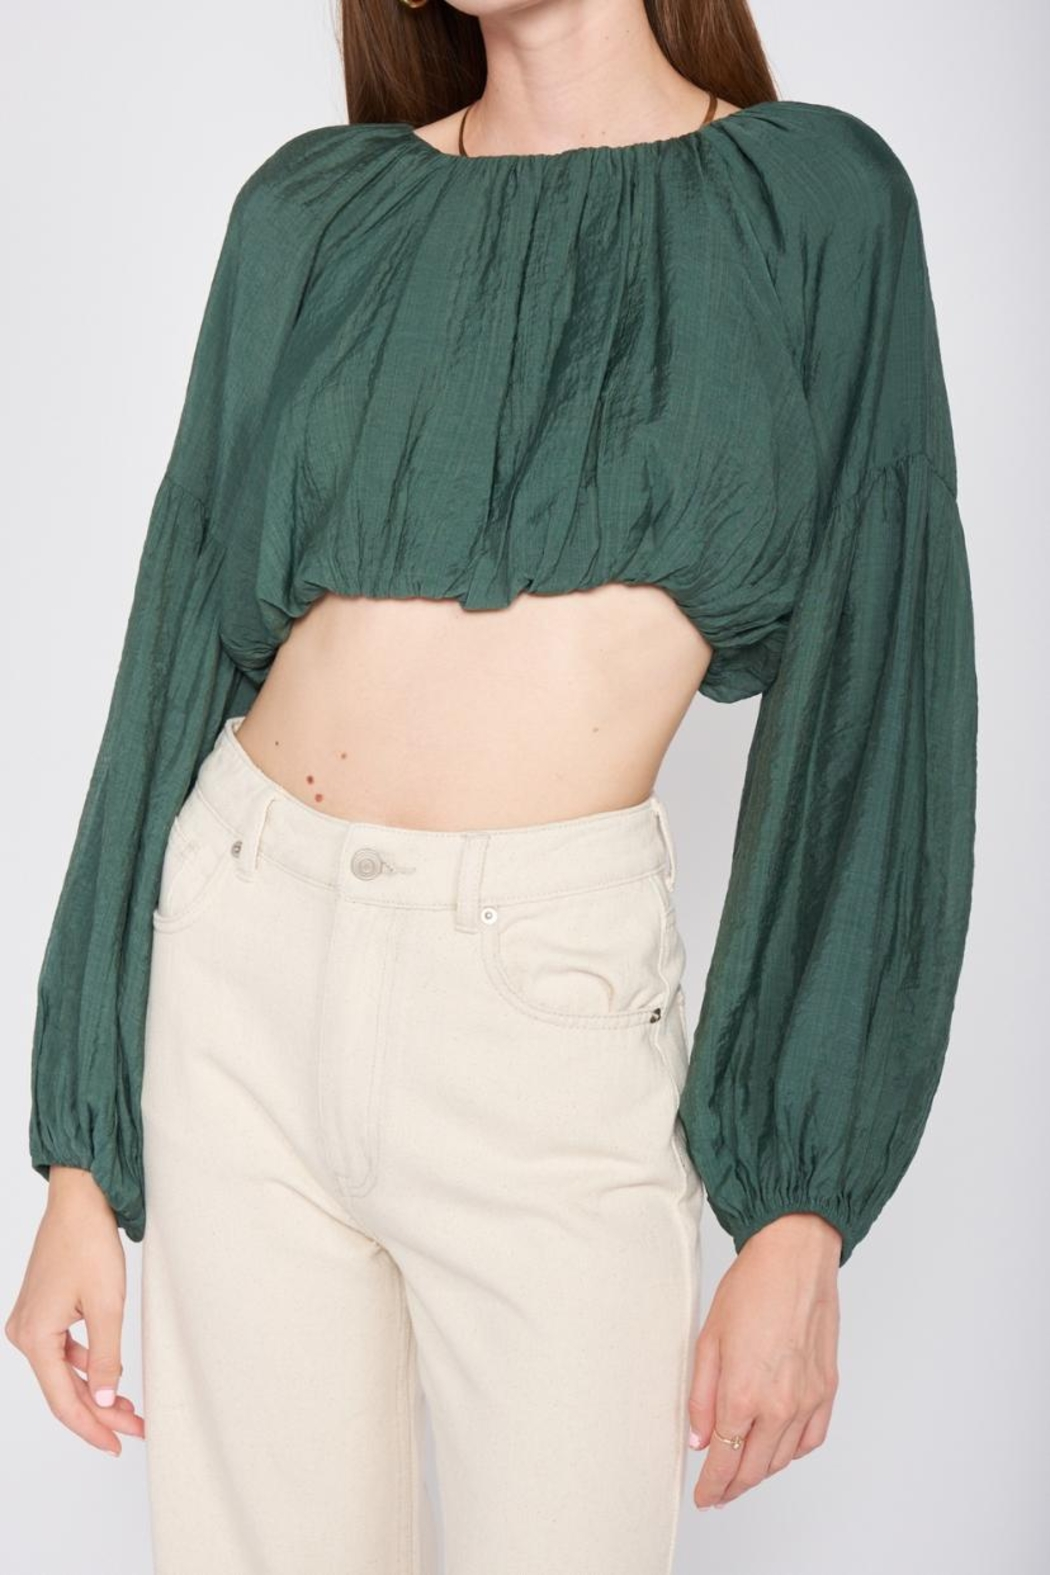 Emory Park Puff Sleeve Top - Front Full Image